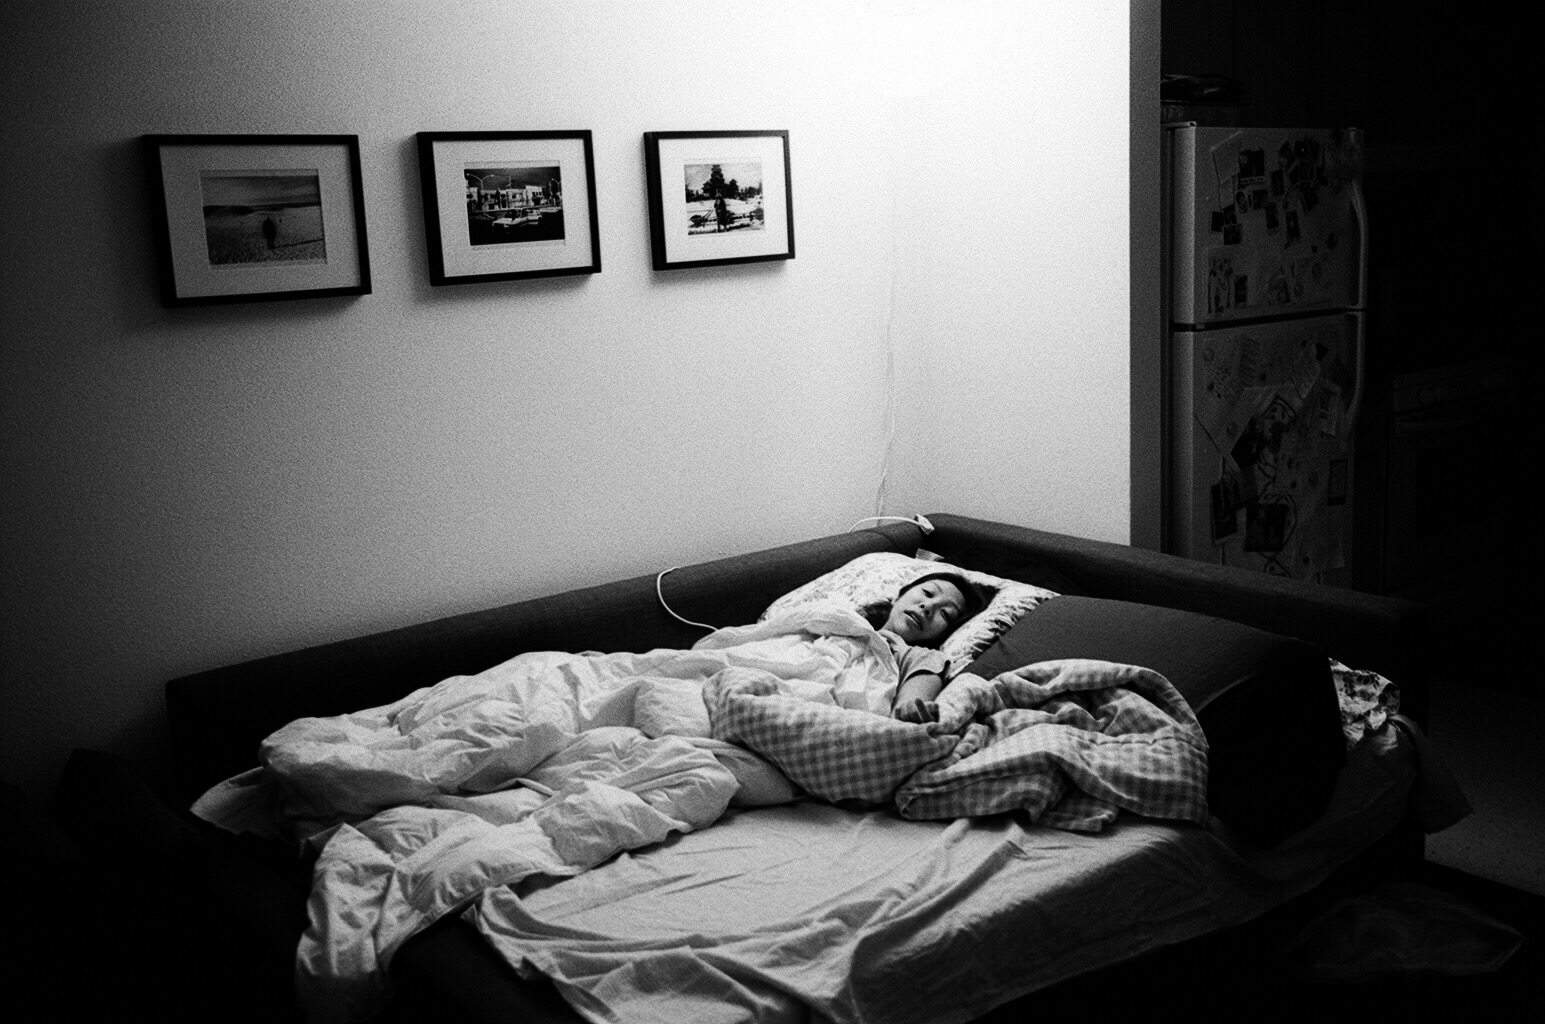 eric-kim-photography-cindy-project-black-and-white-6-couch-bed-living-room-berkeley